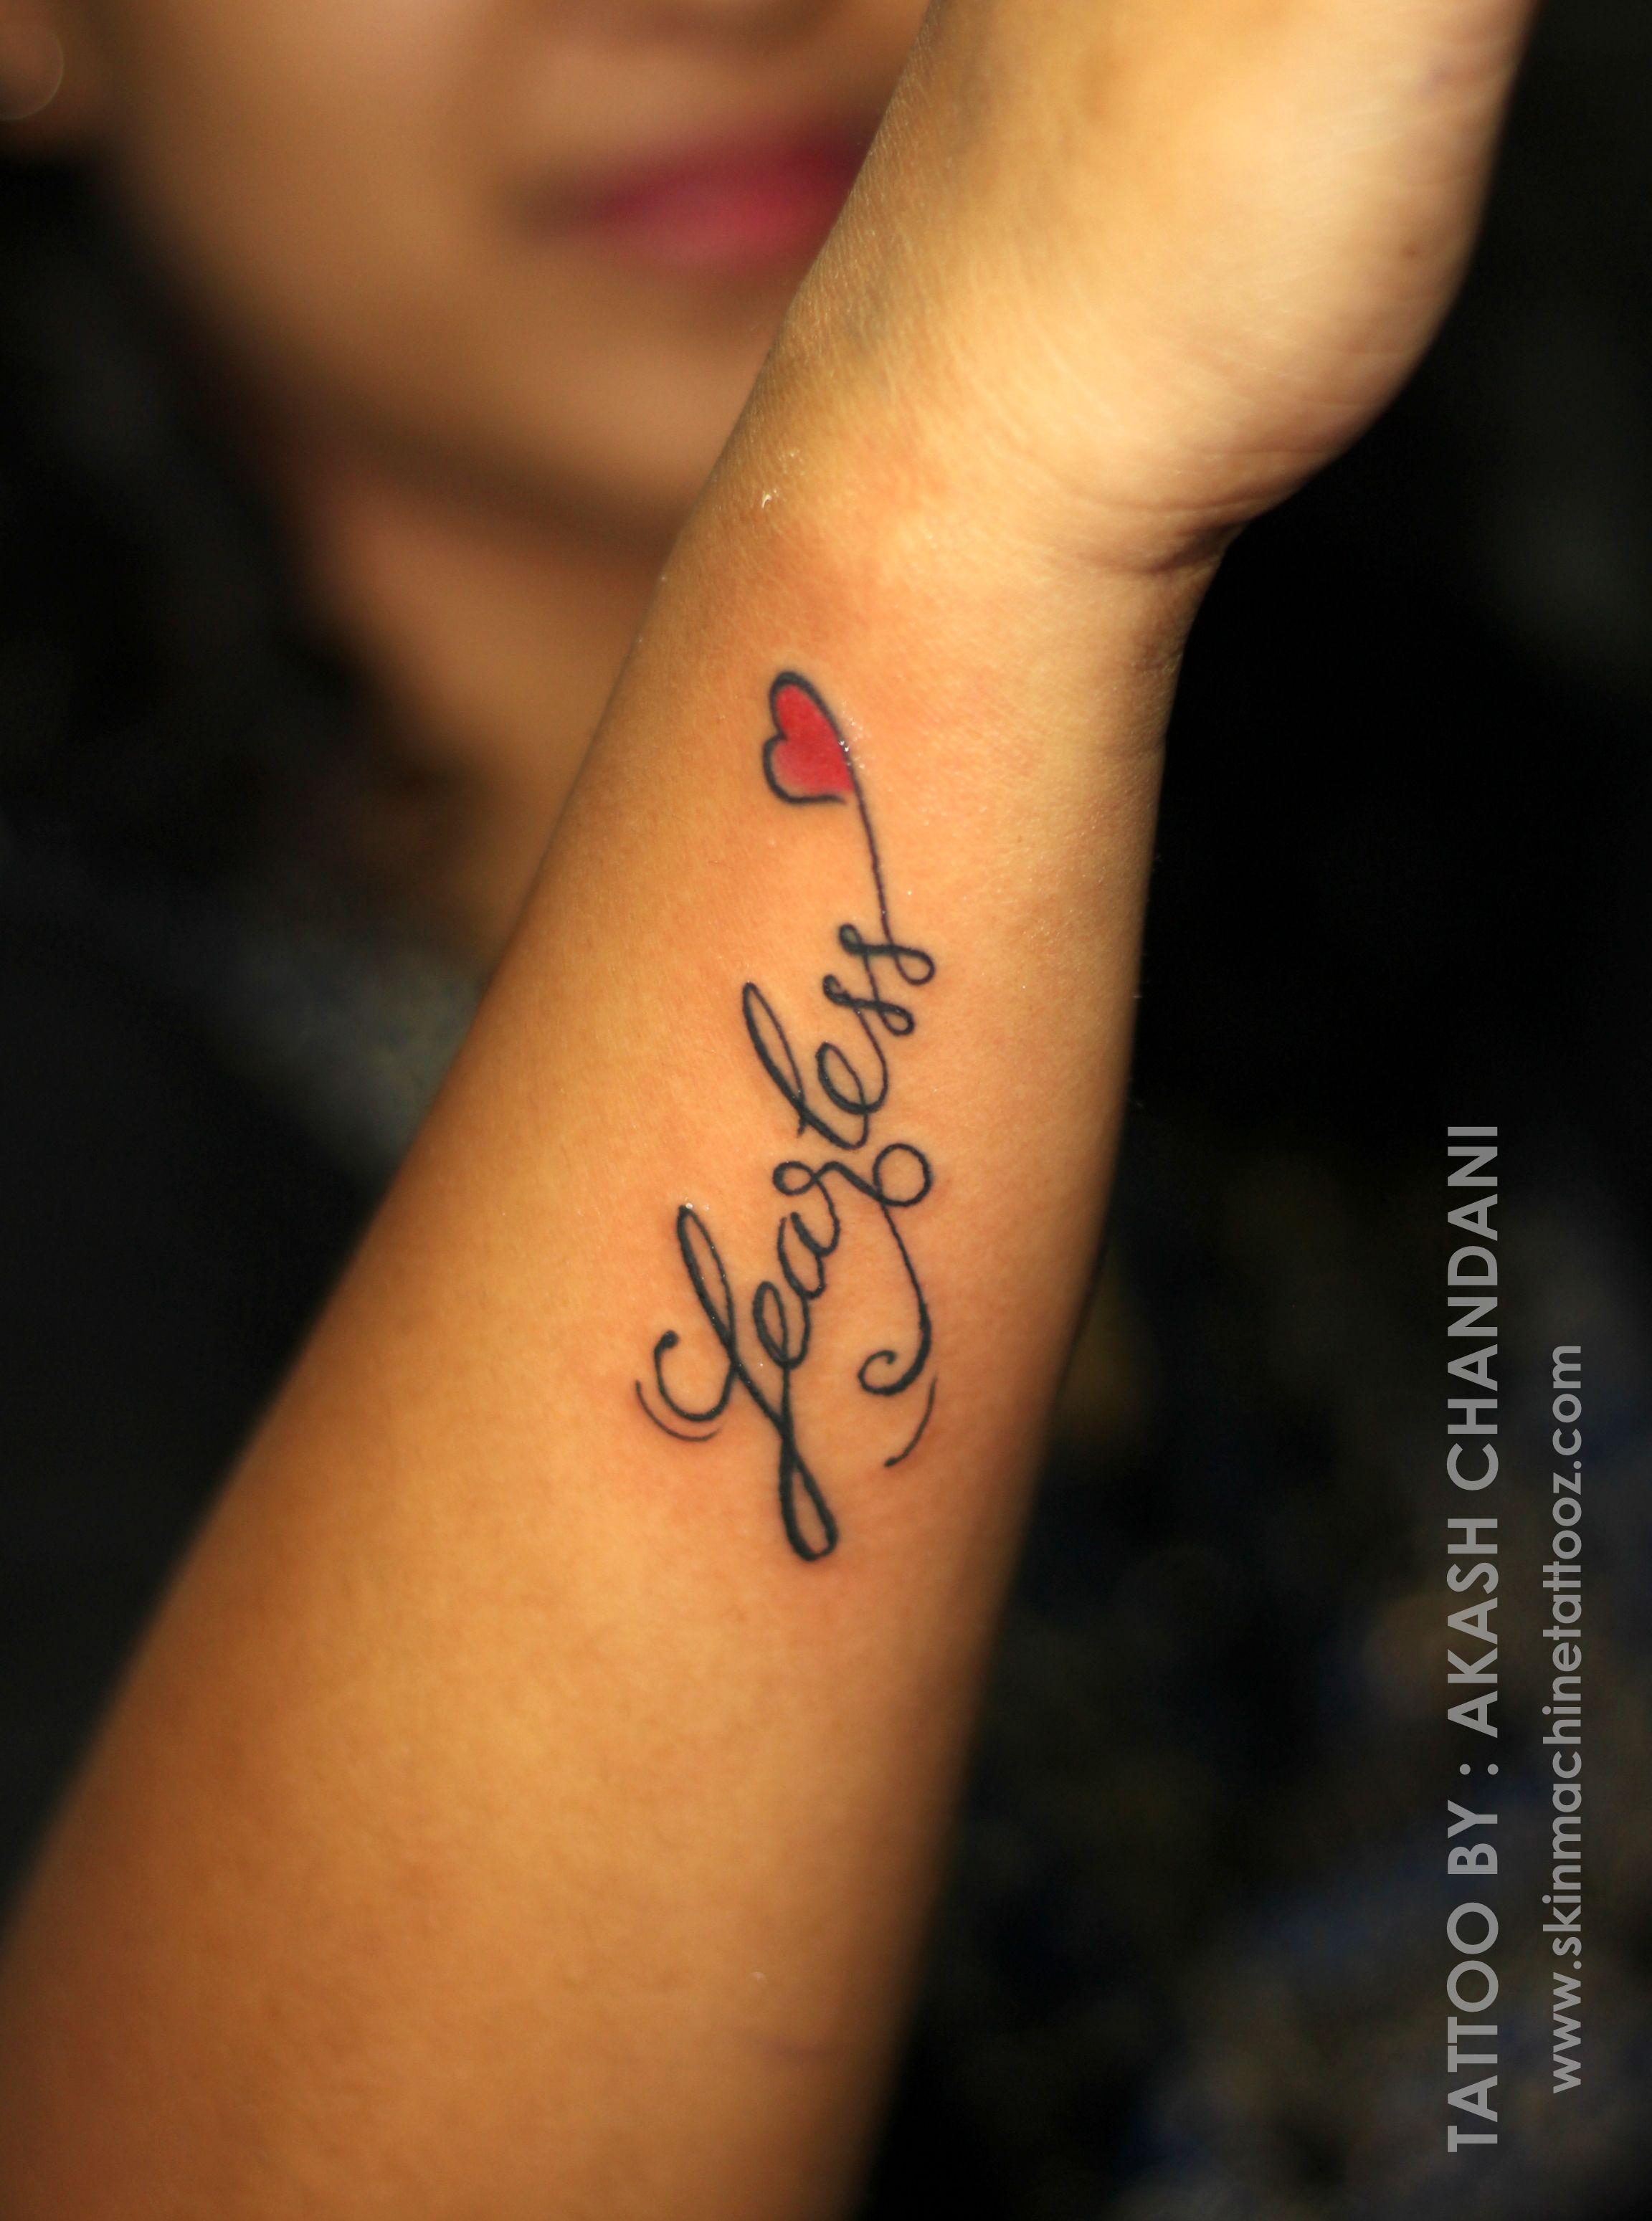 d176a110da83e Calligraphy & Tattoo by : Akash Chandani Skin Machine Tattoo Studio . Bhopal  . India www.skinmachinetattooz.com Email for appointments ...